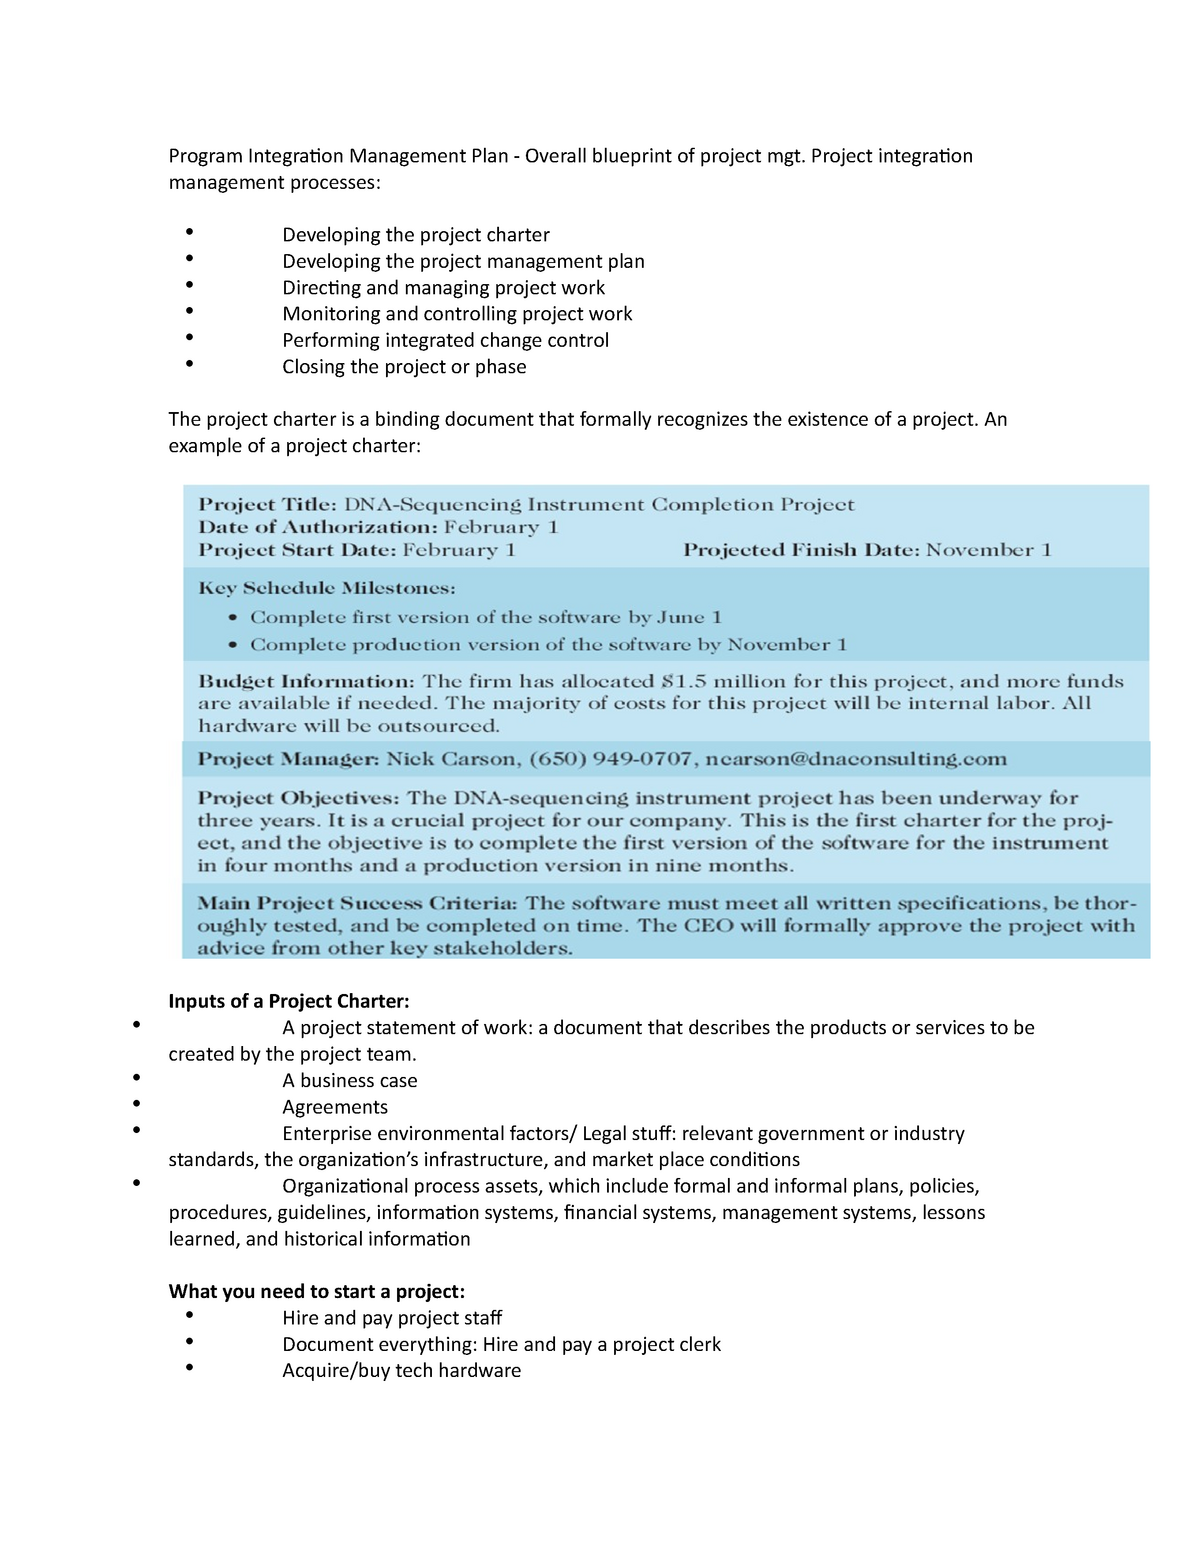 Project Charter and Scope Statement - Citm 750: IS Project